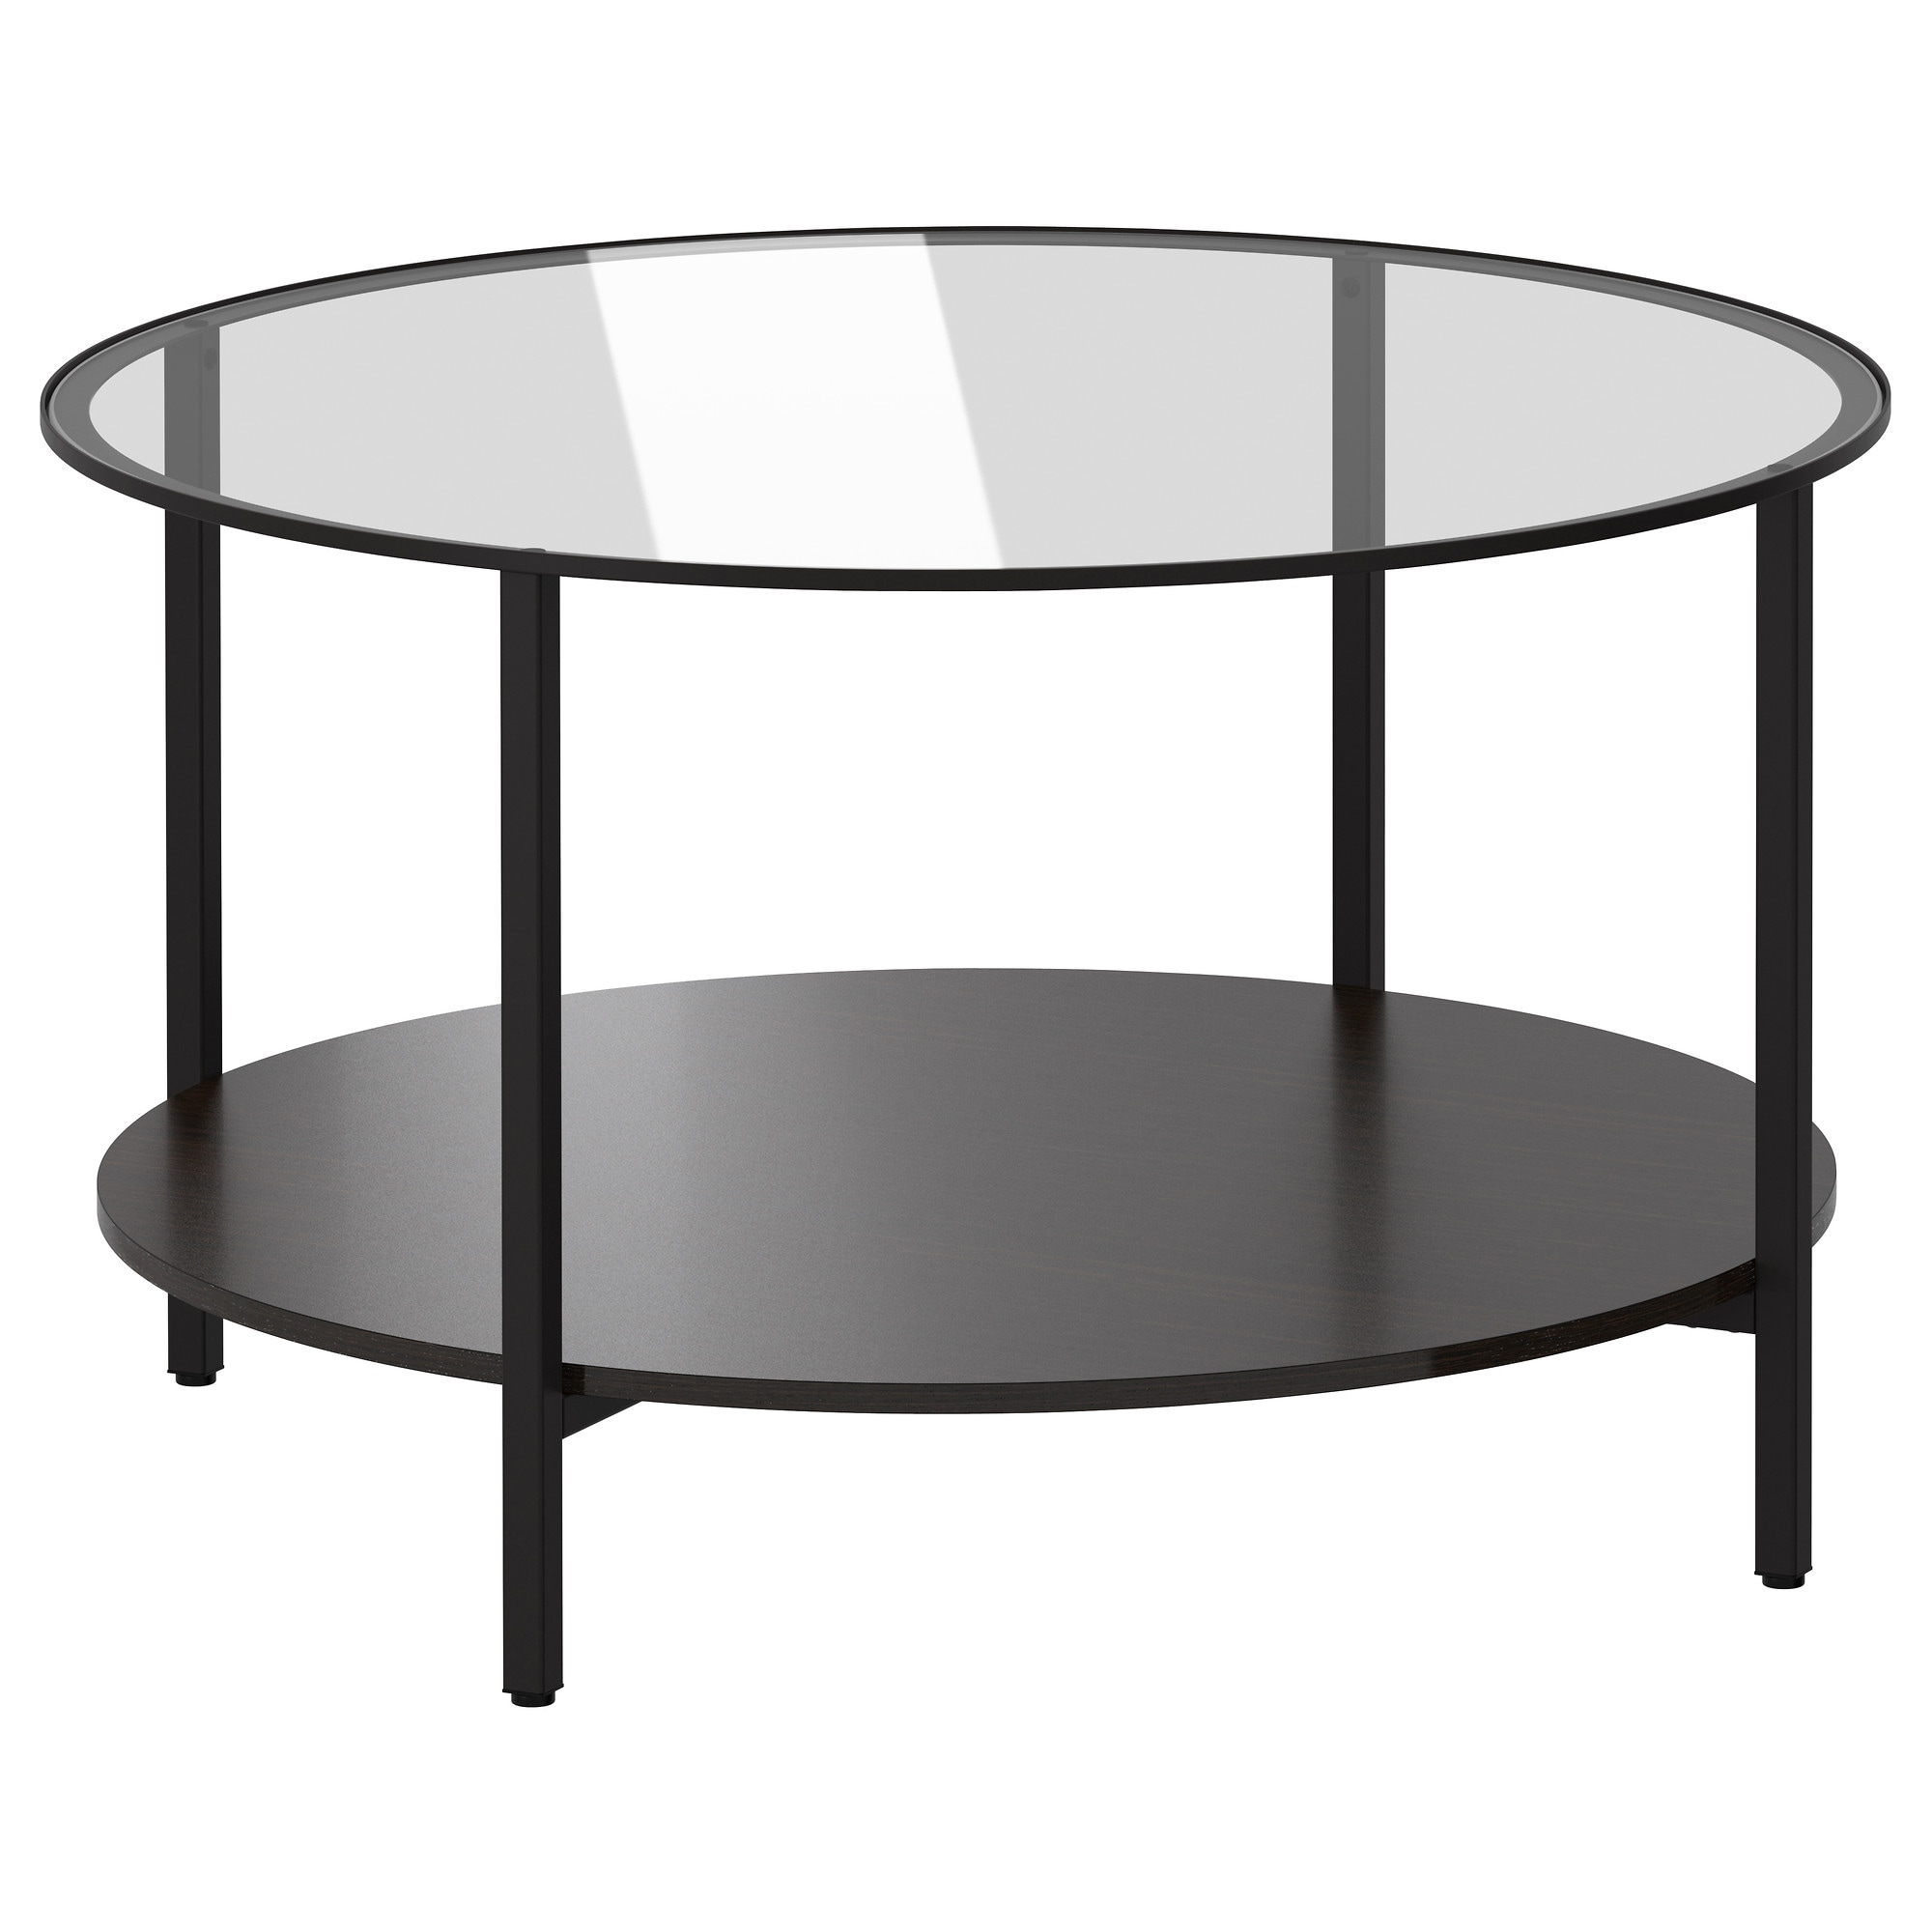 Round black glass coffee table - Round Black Glass Coffee Table 17